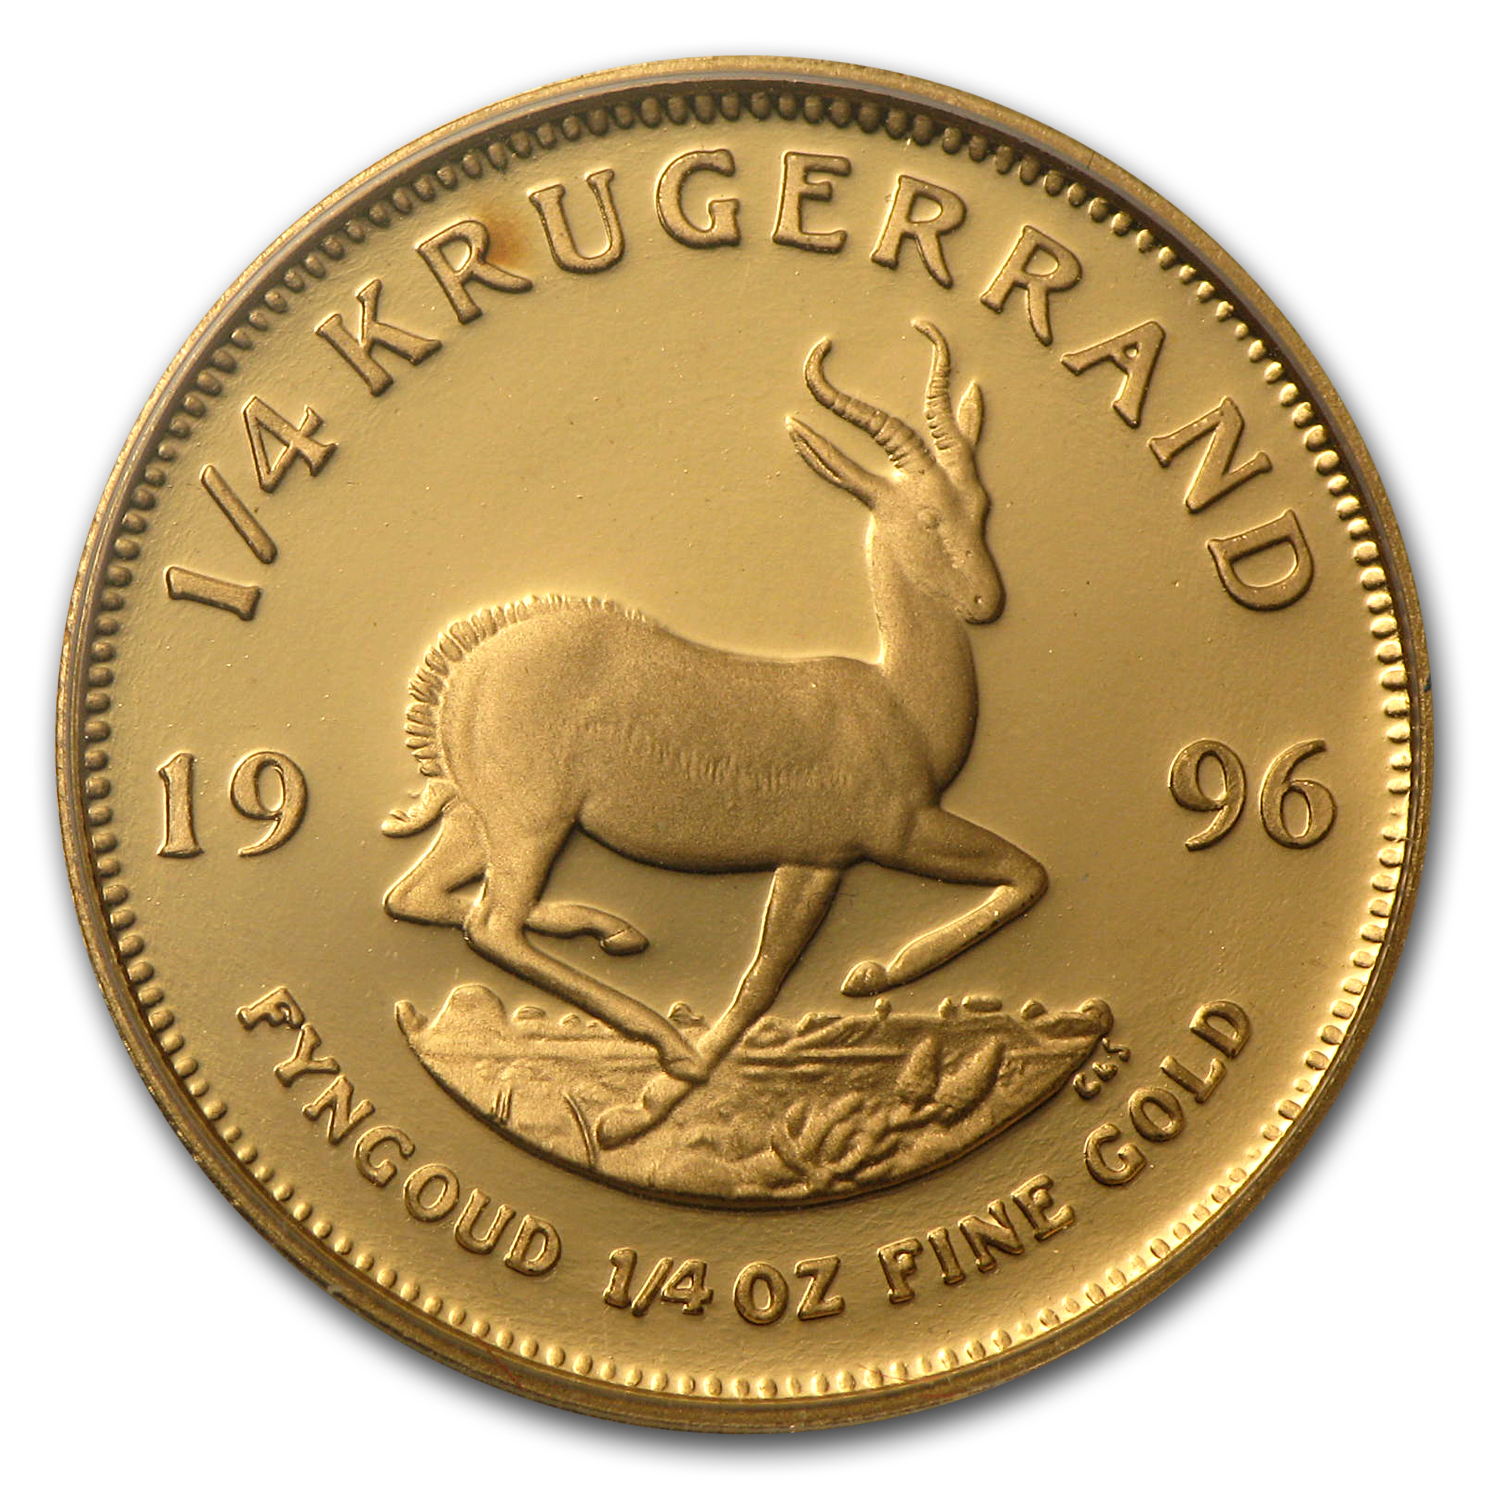 1996 1/4 oz Gold South African Krugerrand (Proof)